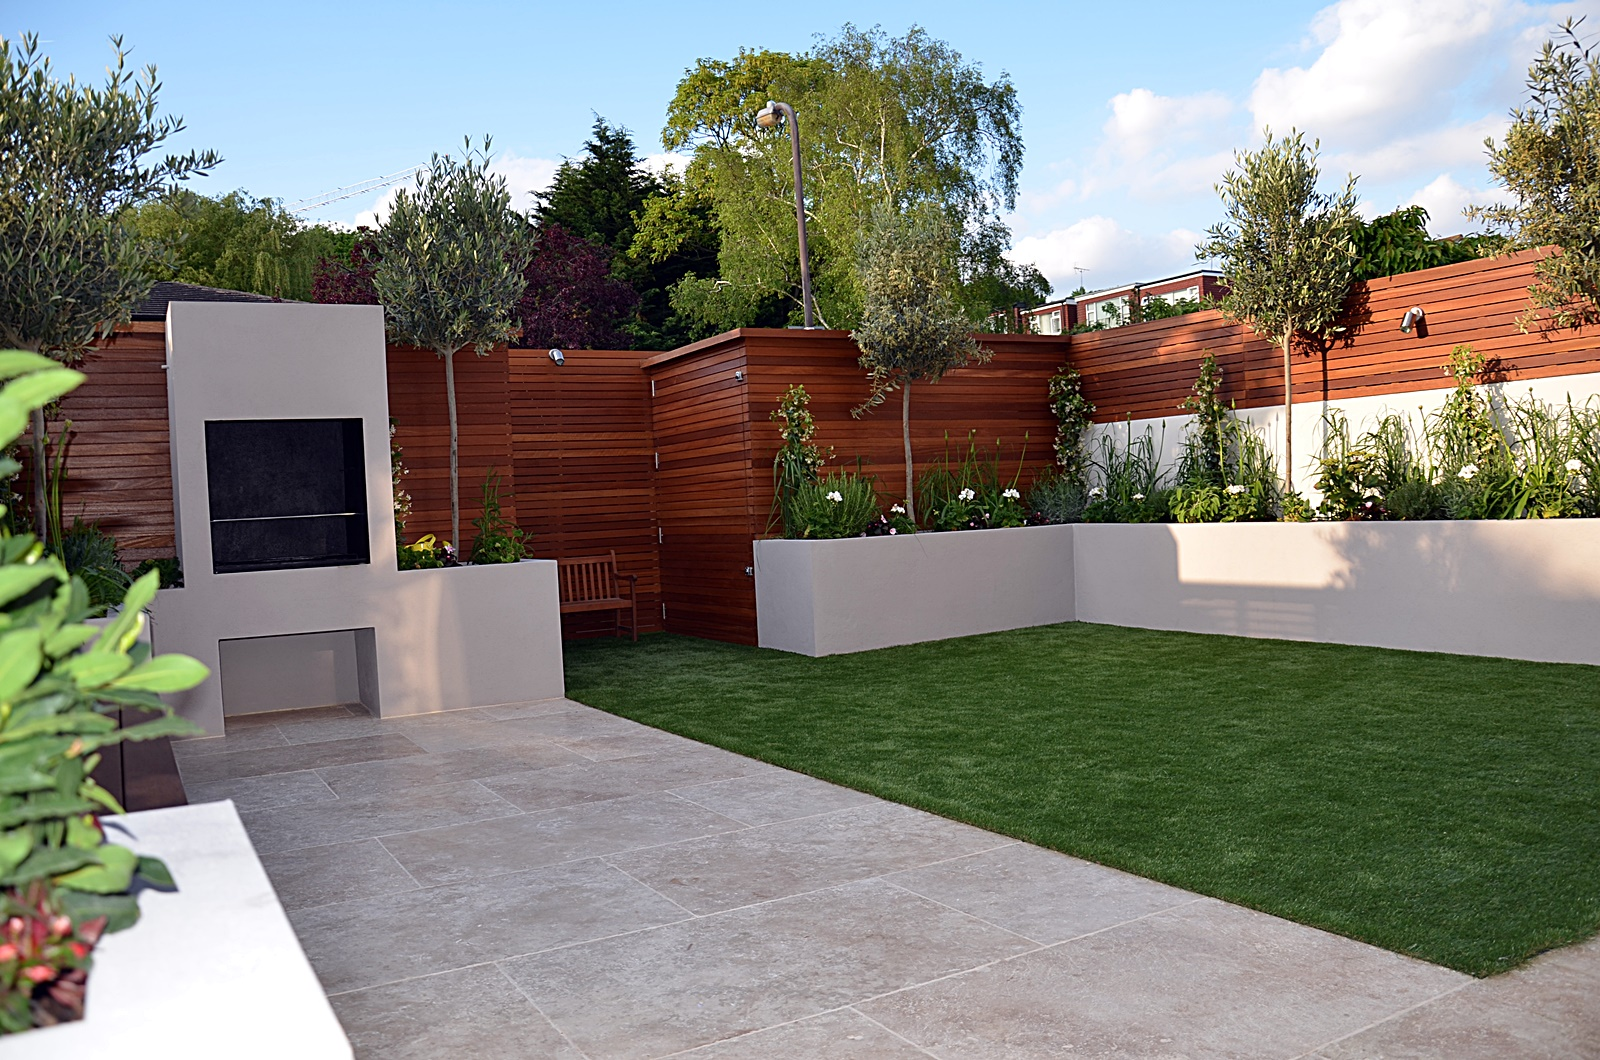 Modern garden design fulham chelsea clapham battersea for Design in garden